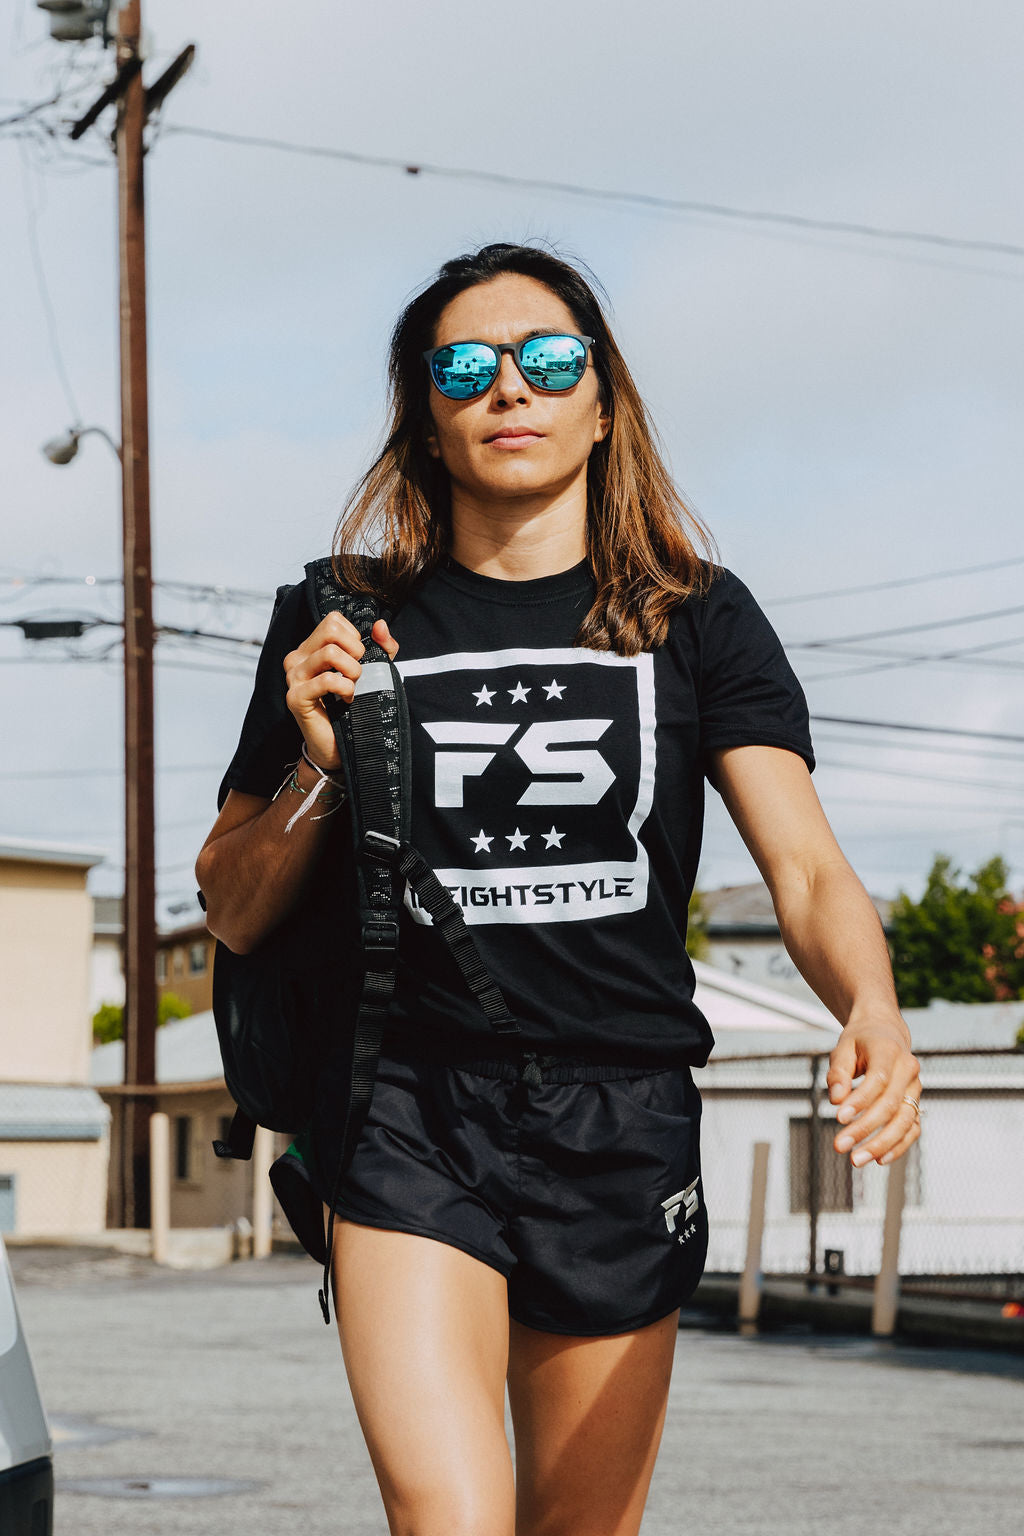 FS Block Logo Tee - Black - InFightStyle Muay Thai Gear, T-Shirt